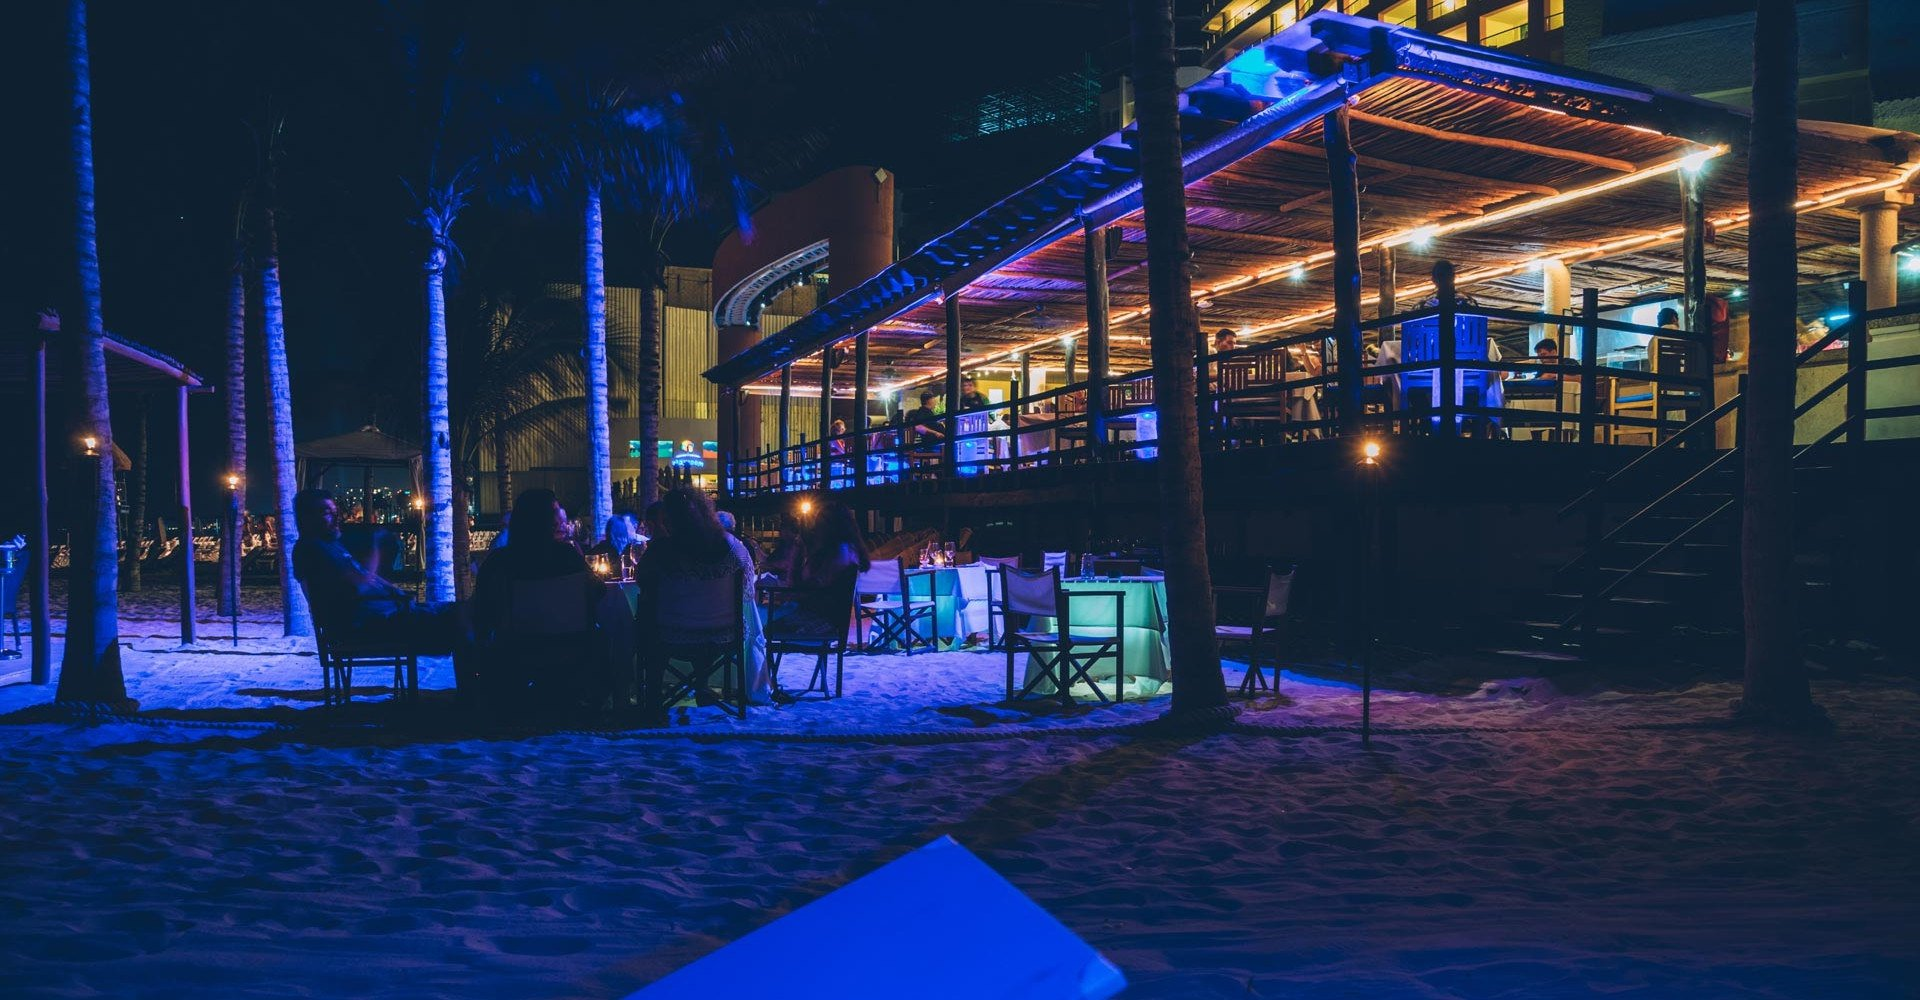 Deck hotel nyx cancun